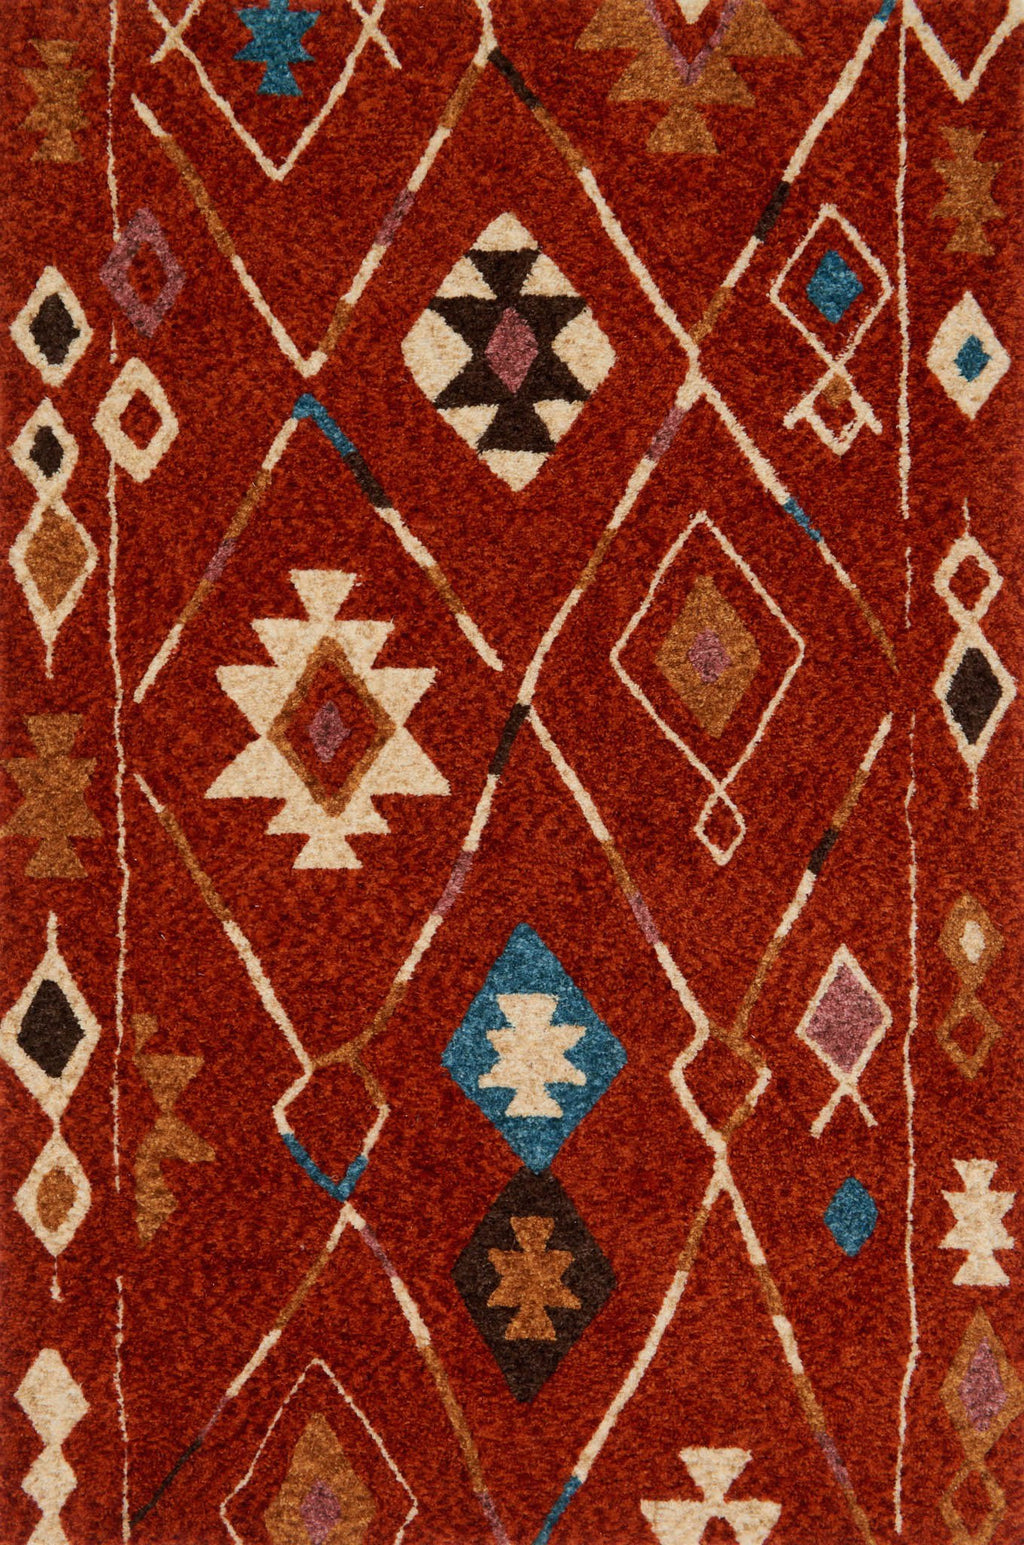 KALLIOPE Collection Rug  in  SPICE / BLUE Red Small Hand-Woven Polyester